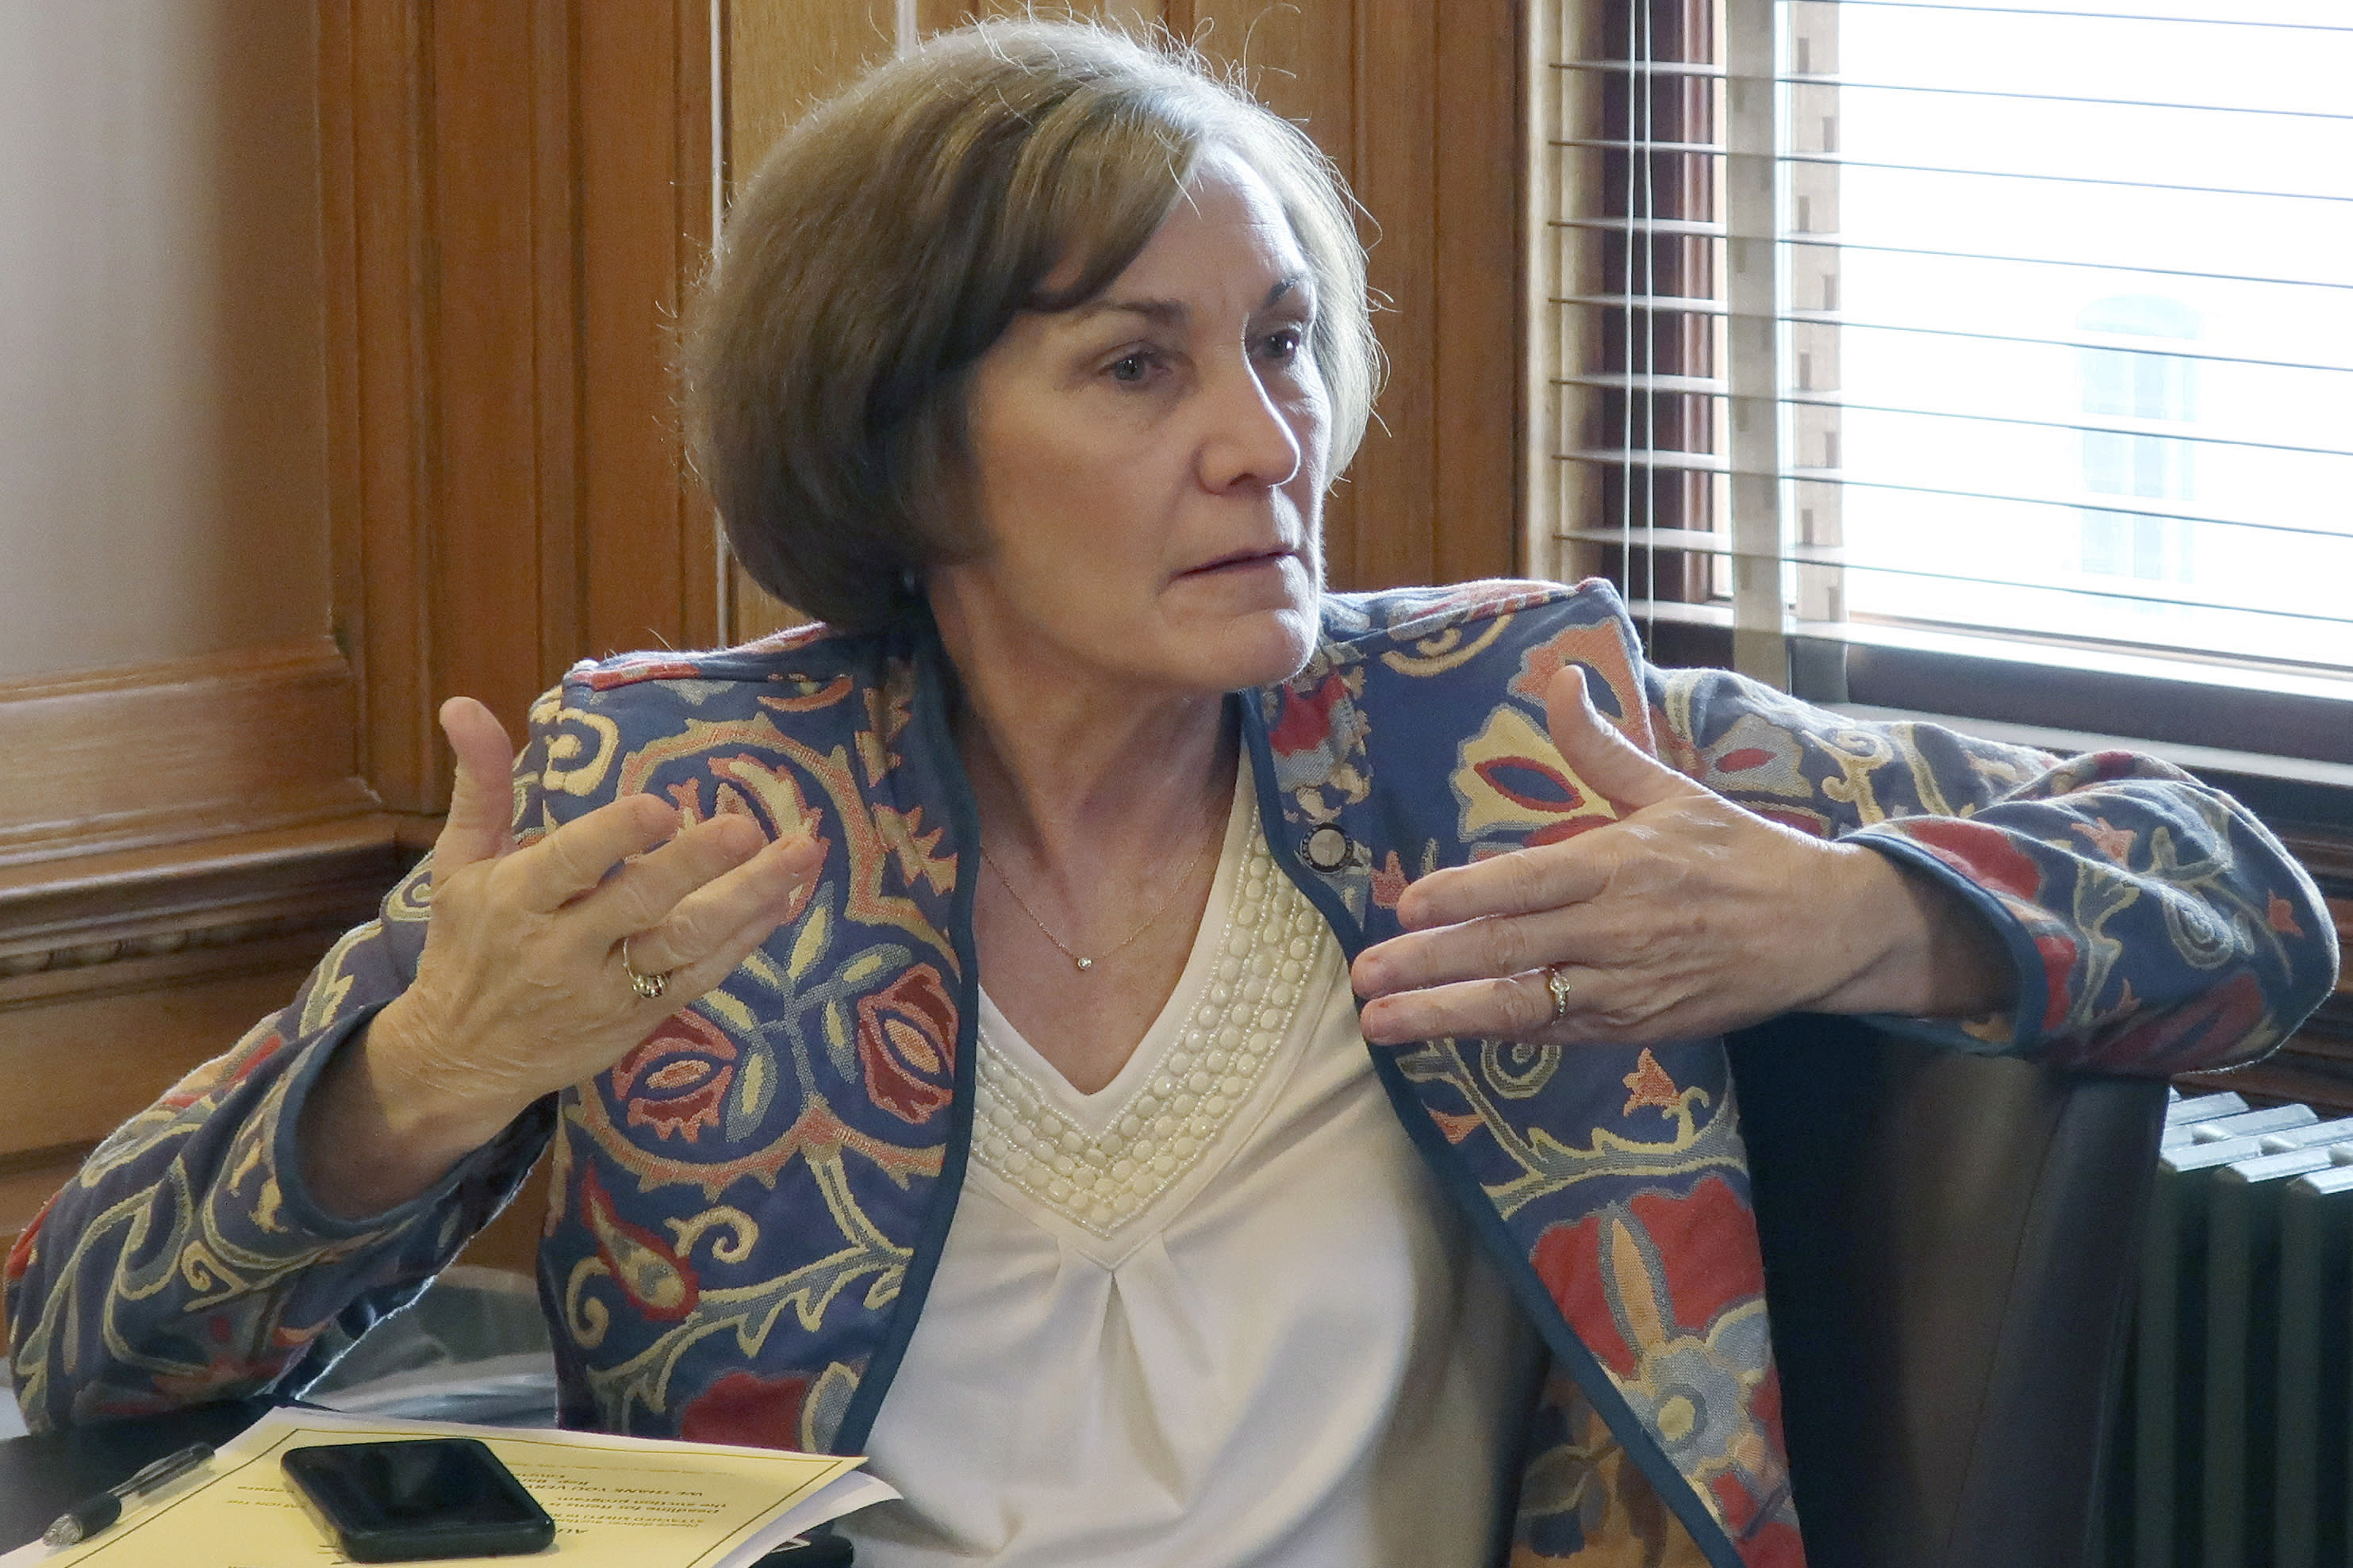 FILE - In this Feb. 13, 2019, file photo, state Sen. Barbara Bollier, D-Mission Hills, speaks during a meeting of Democratic senators at the Statehouse in Topeka, Kan. Rep. Roger Marshall and Bollier meet in their first debate of their race to replace retiring Sen. Pat Roberts. (AP Photo/John Hanna, File)